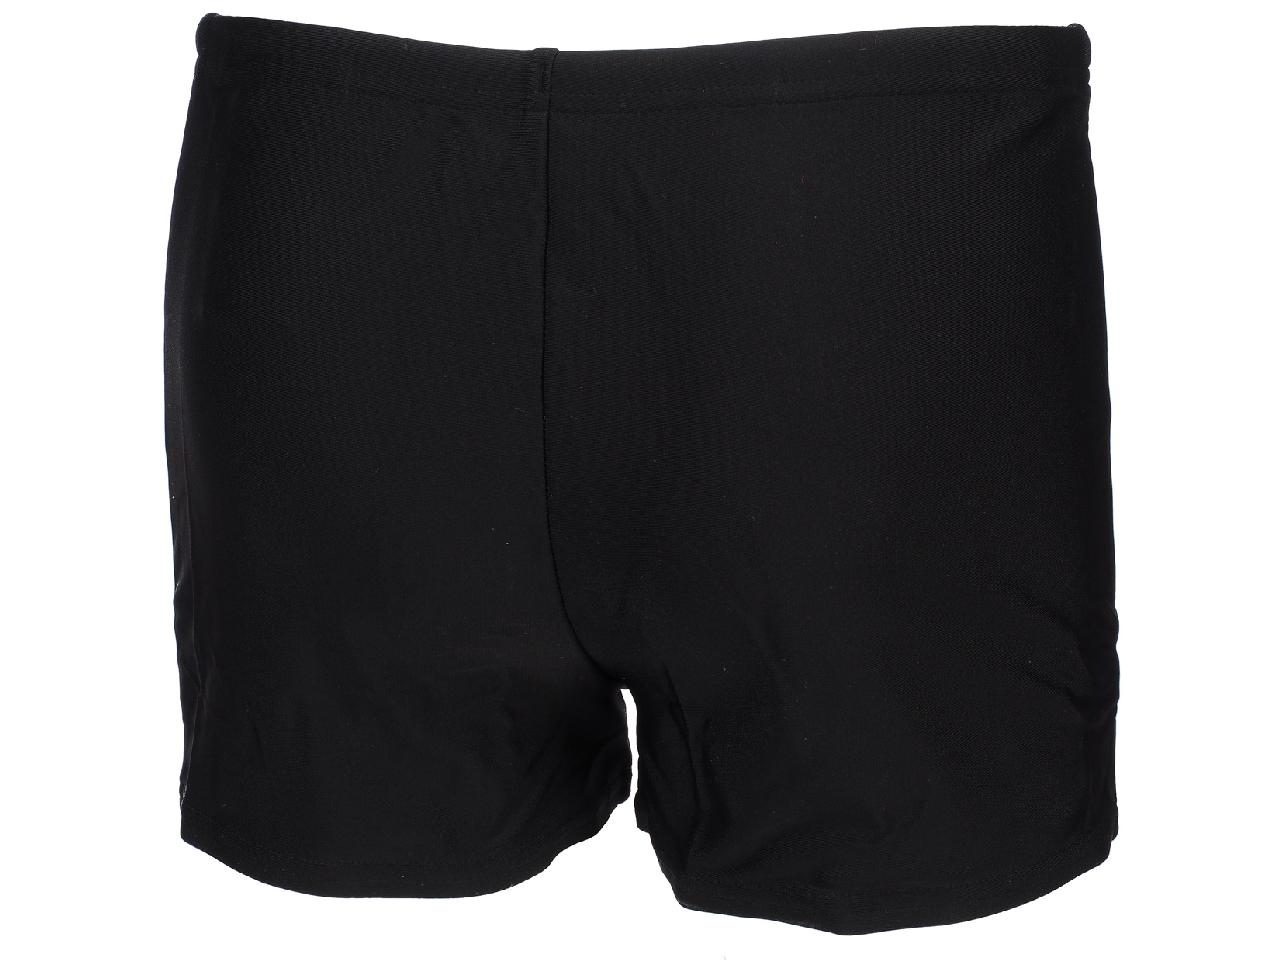 Maillot-de-bain-boxer-Speedo-Lightnink-kid-blk-orange-Noir-83238-Neuf